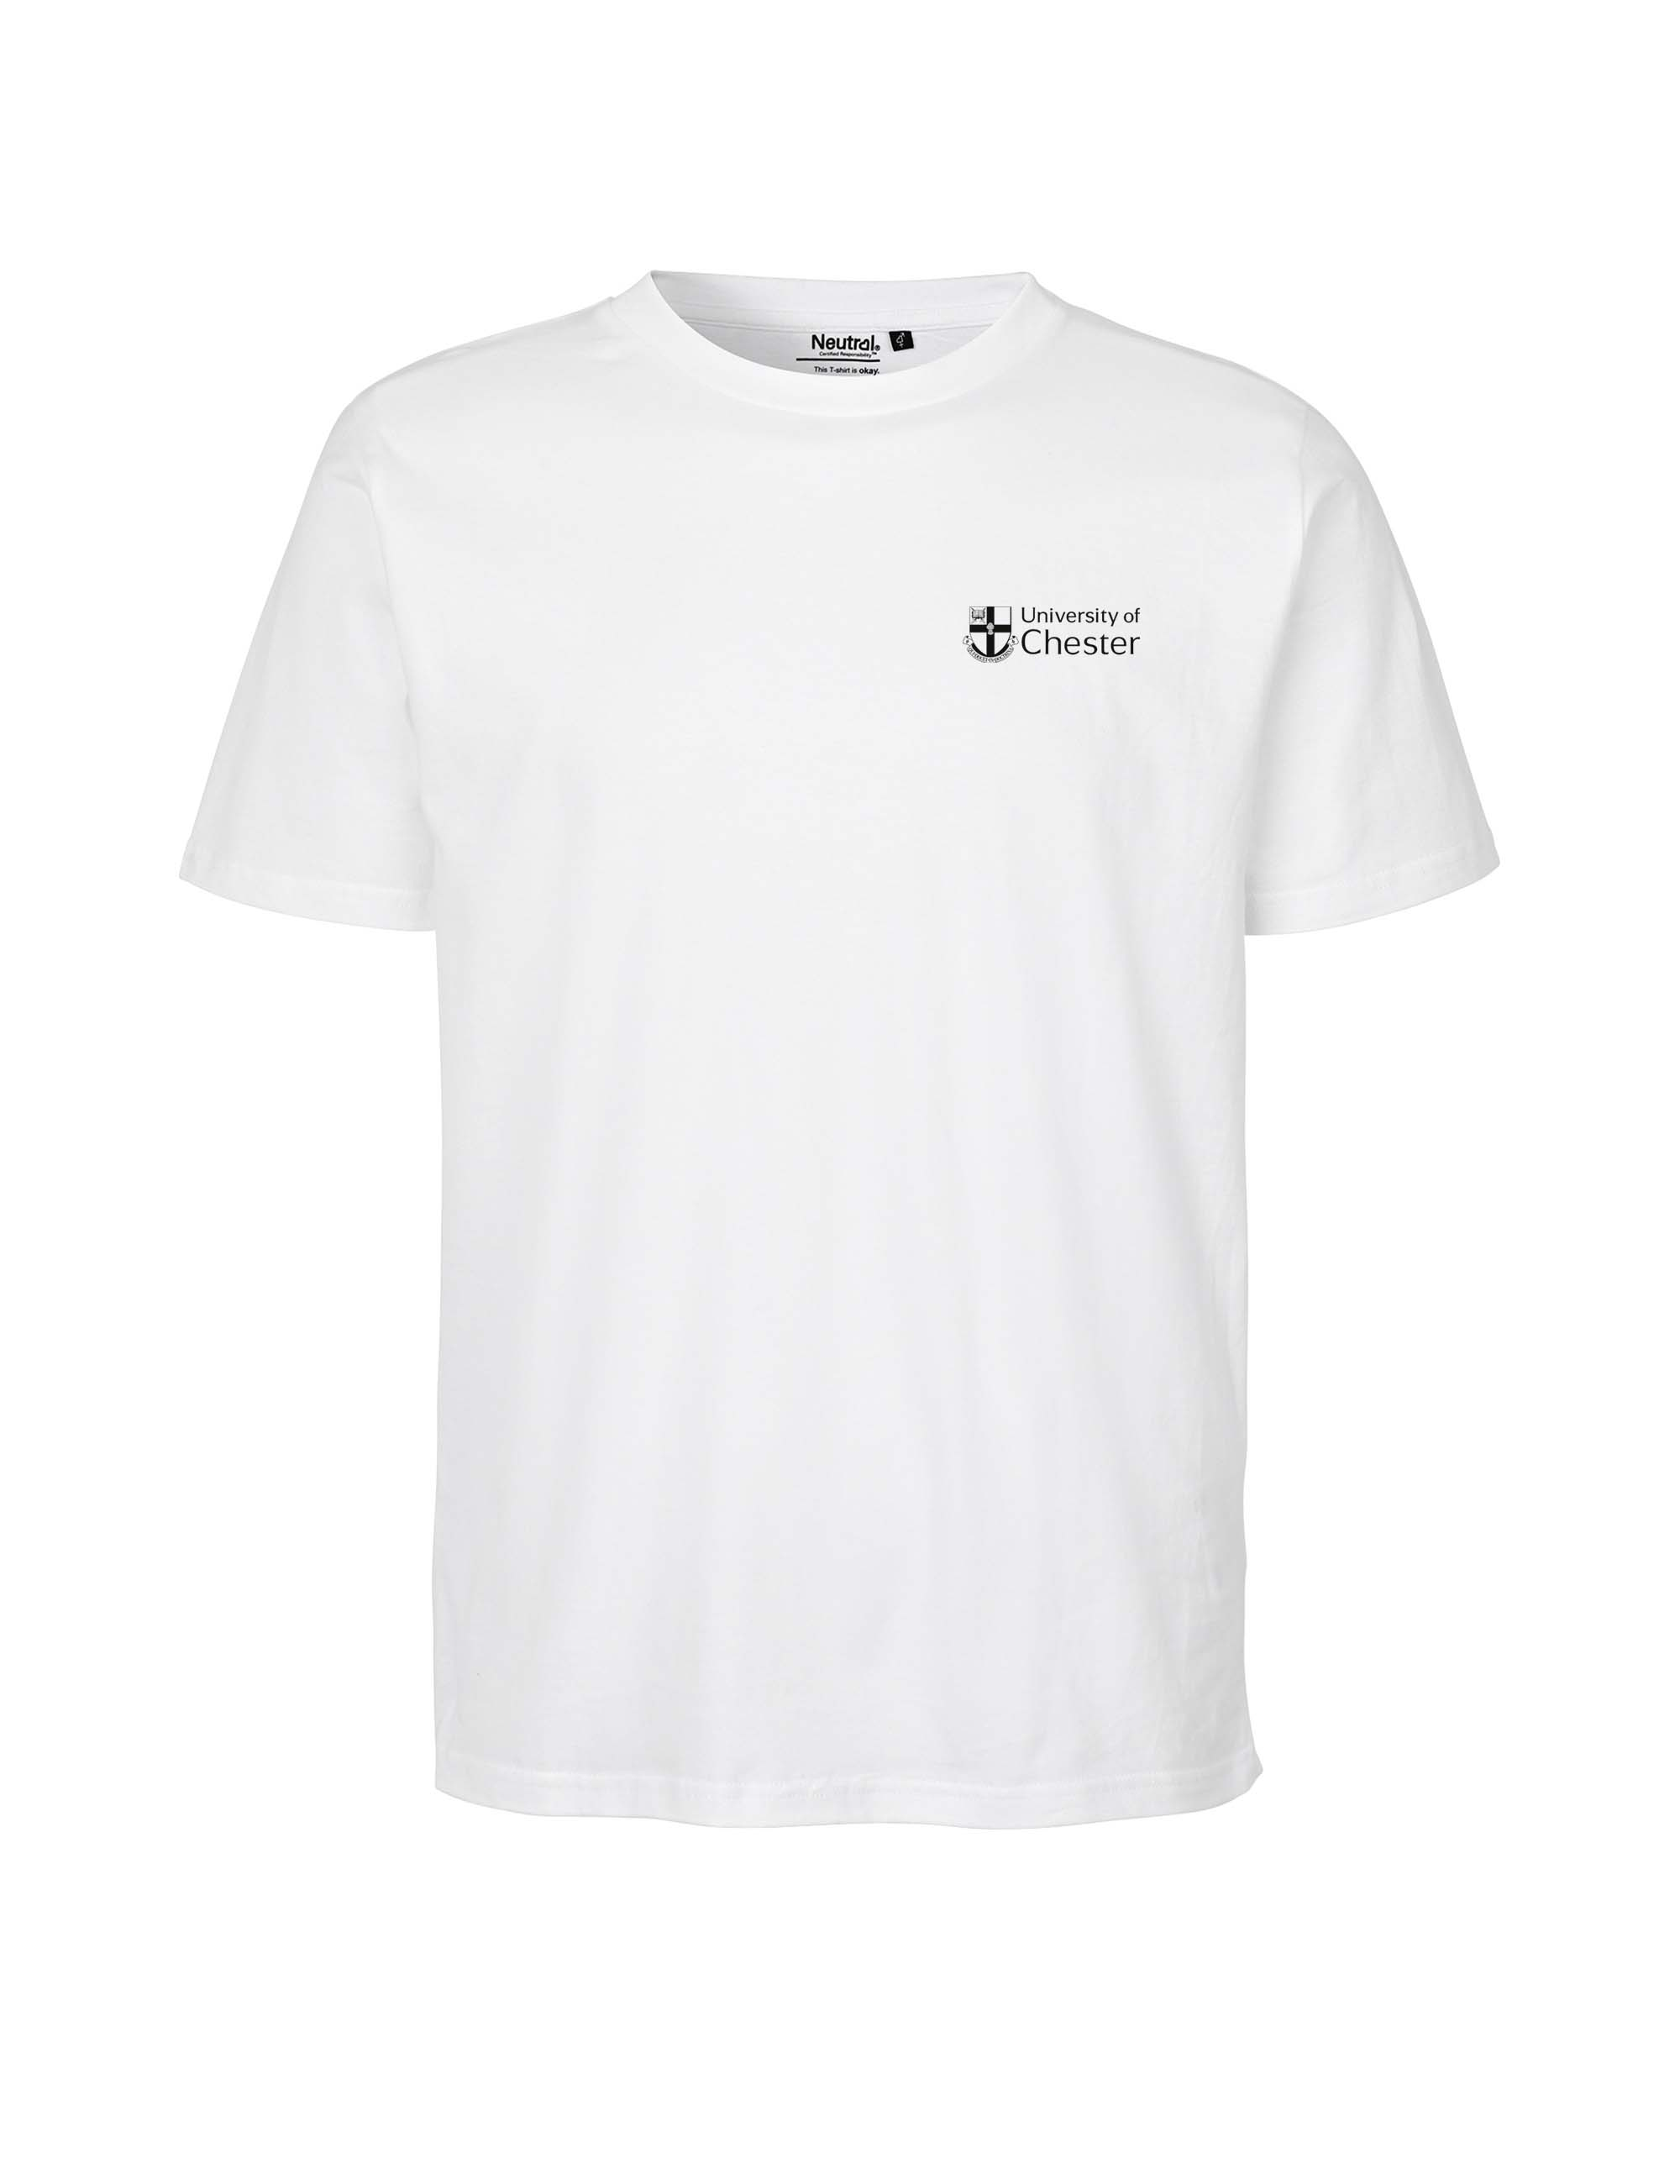 Neutral range - UoC T-Shirt - White - S